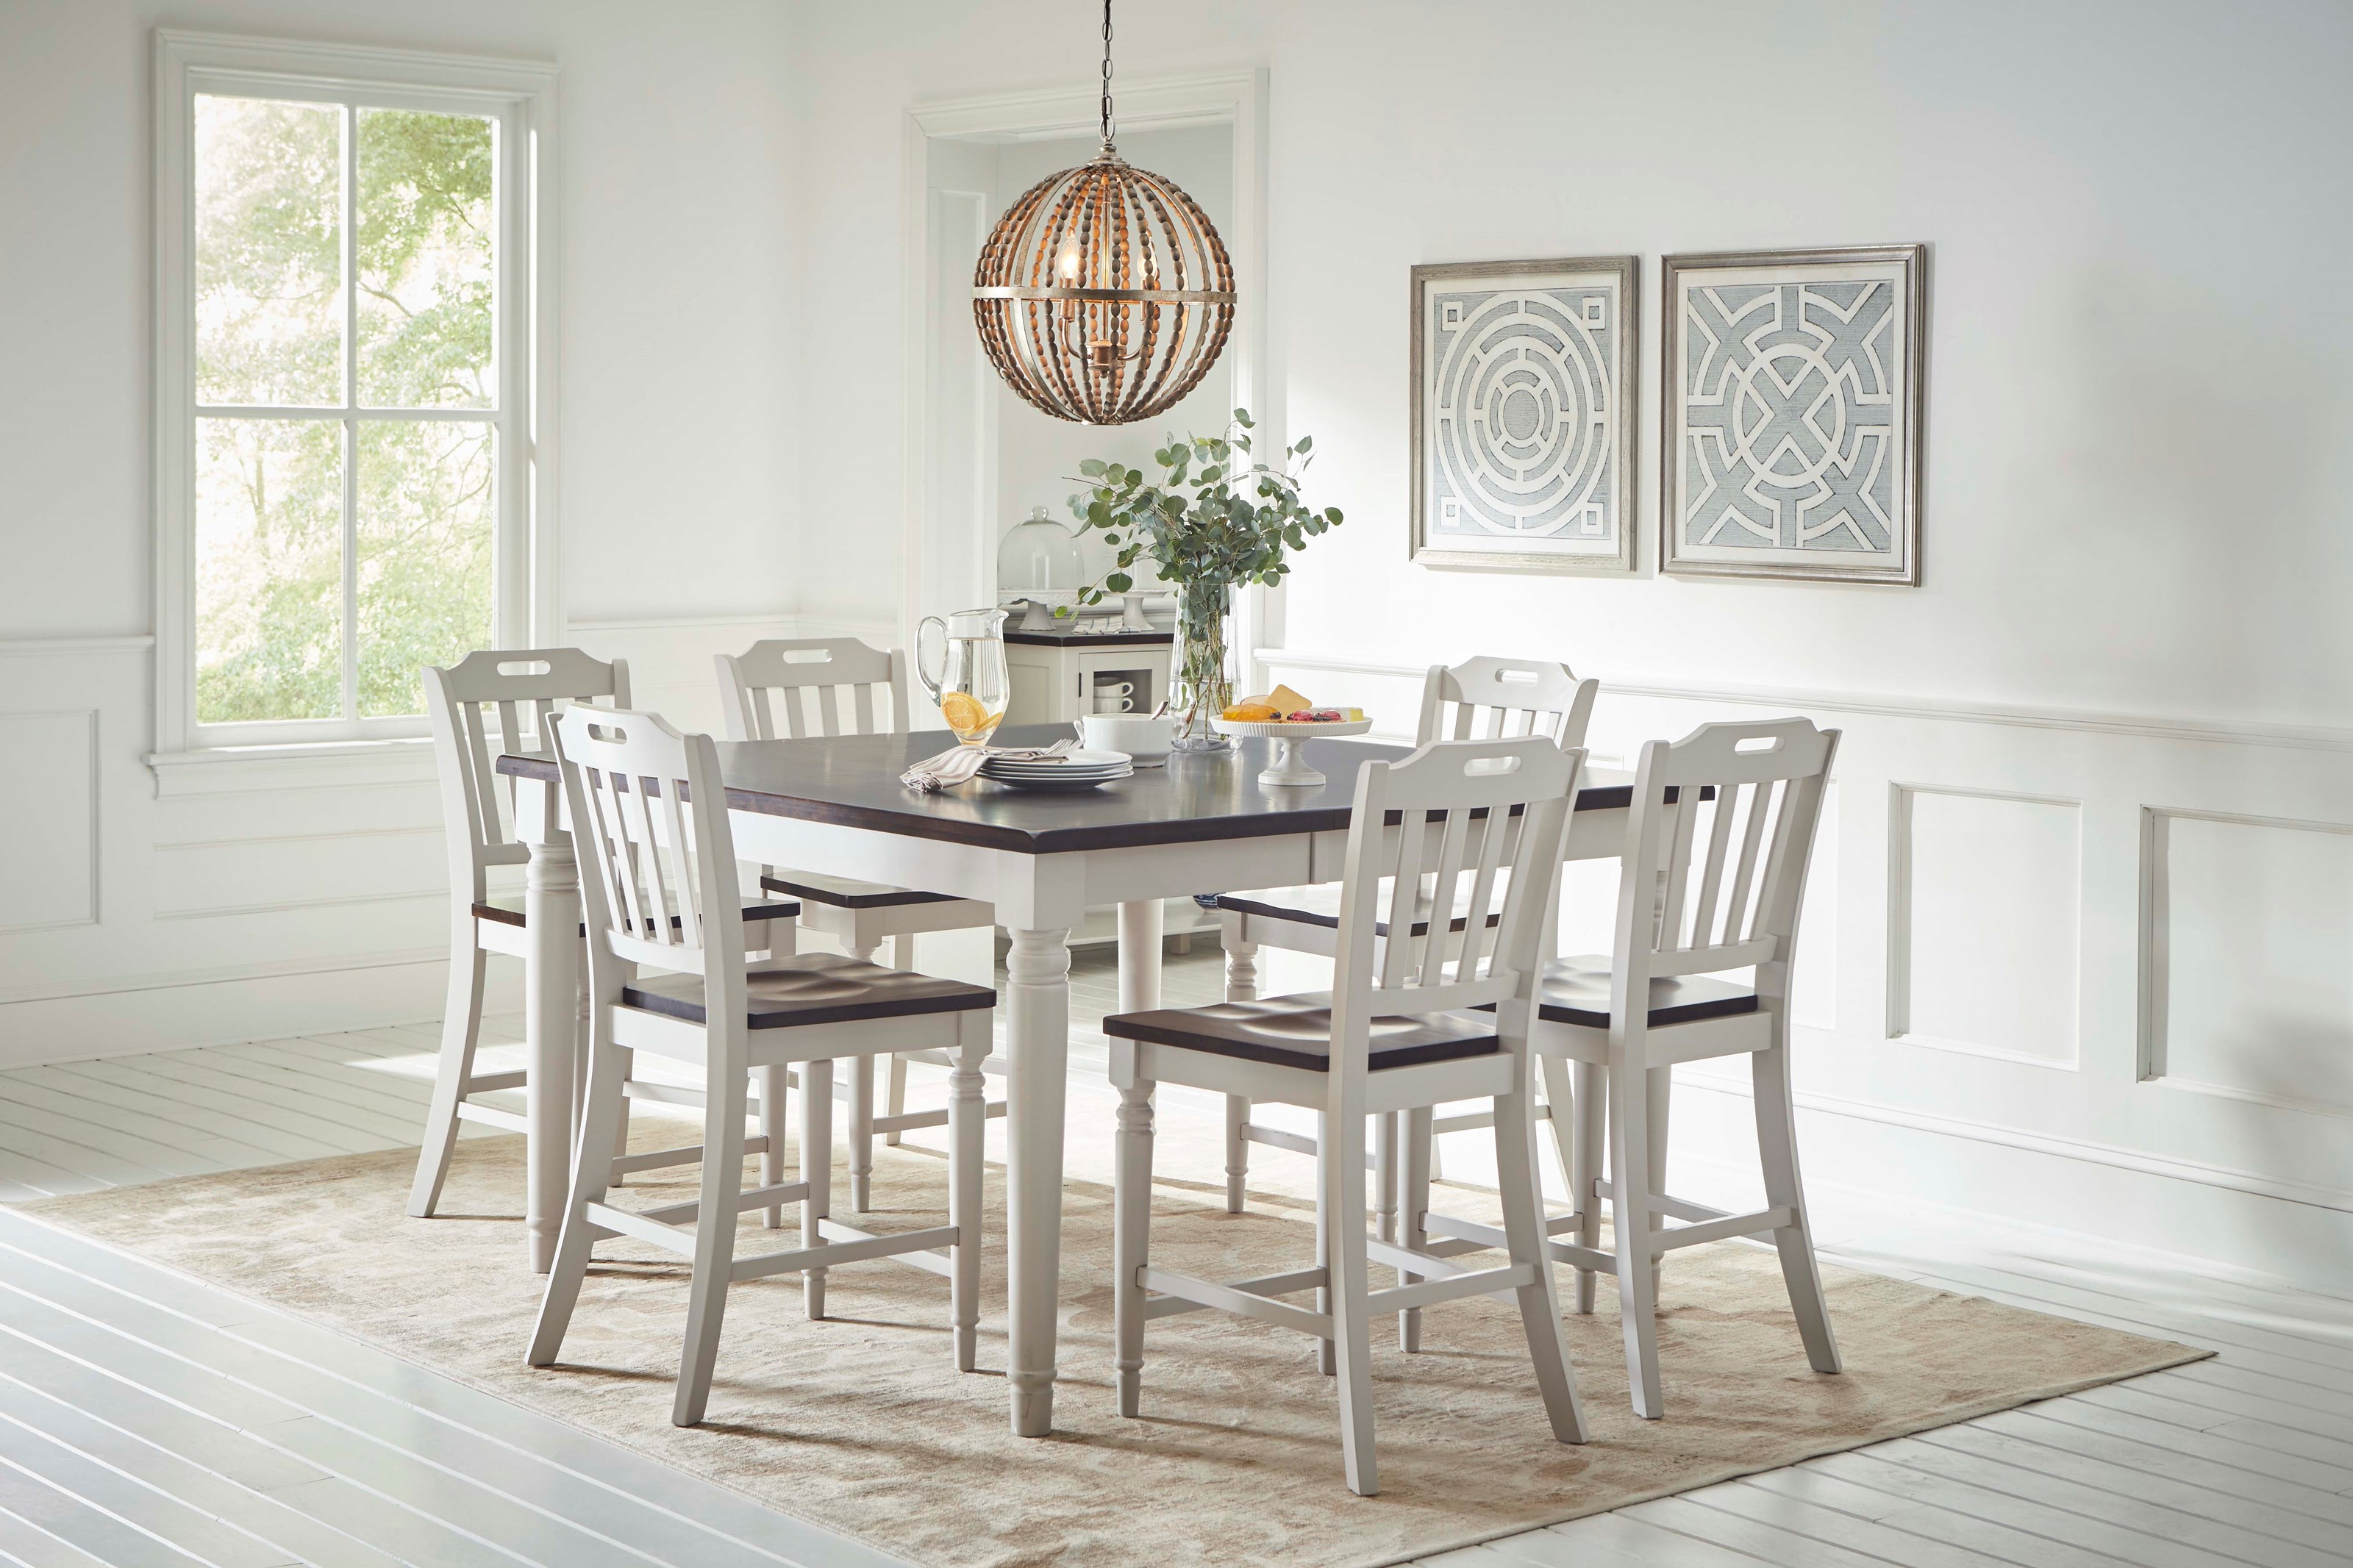 Jofran Orchard Park Counter Height Dining Table With 8 Chairs | A1 Furniture & Mattress | Dining 7 (or More) Piece Sets